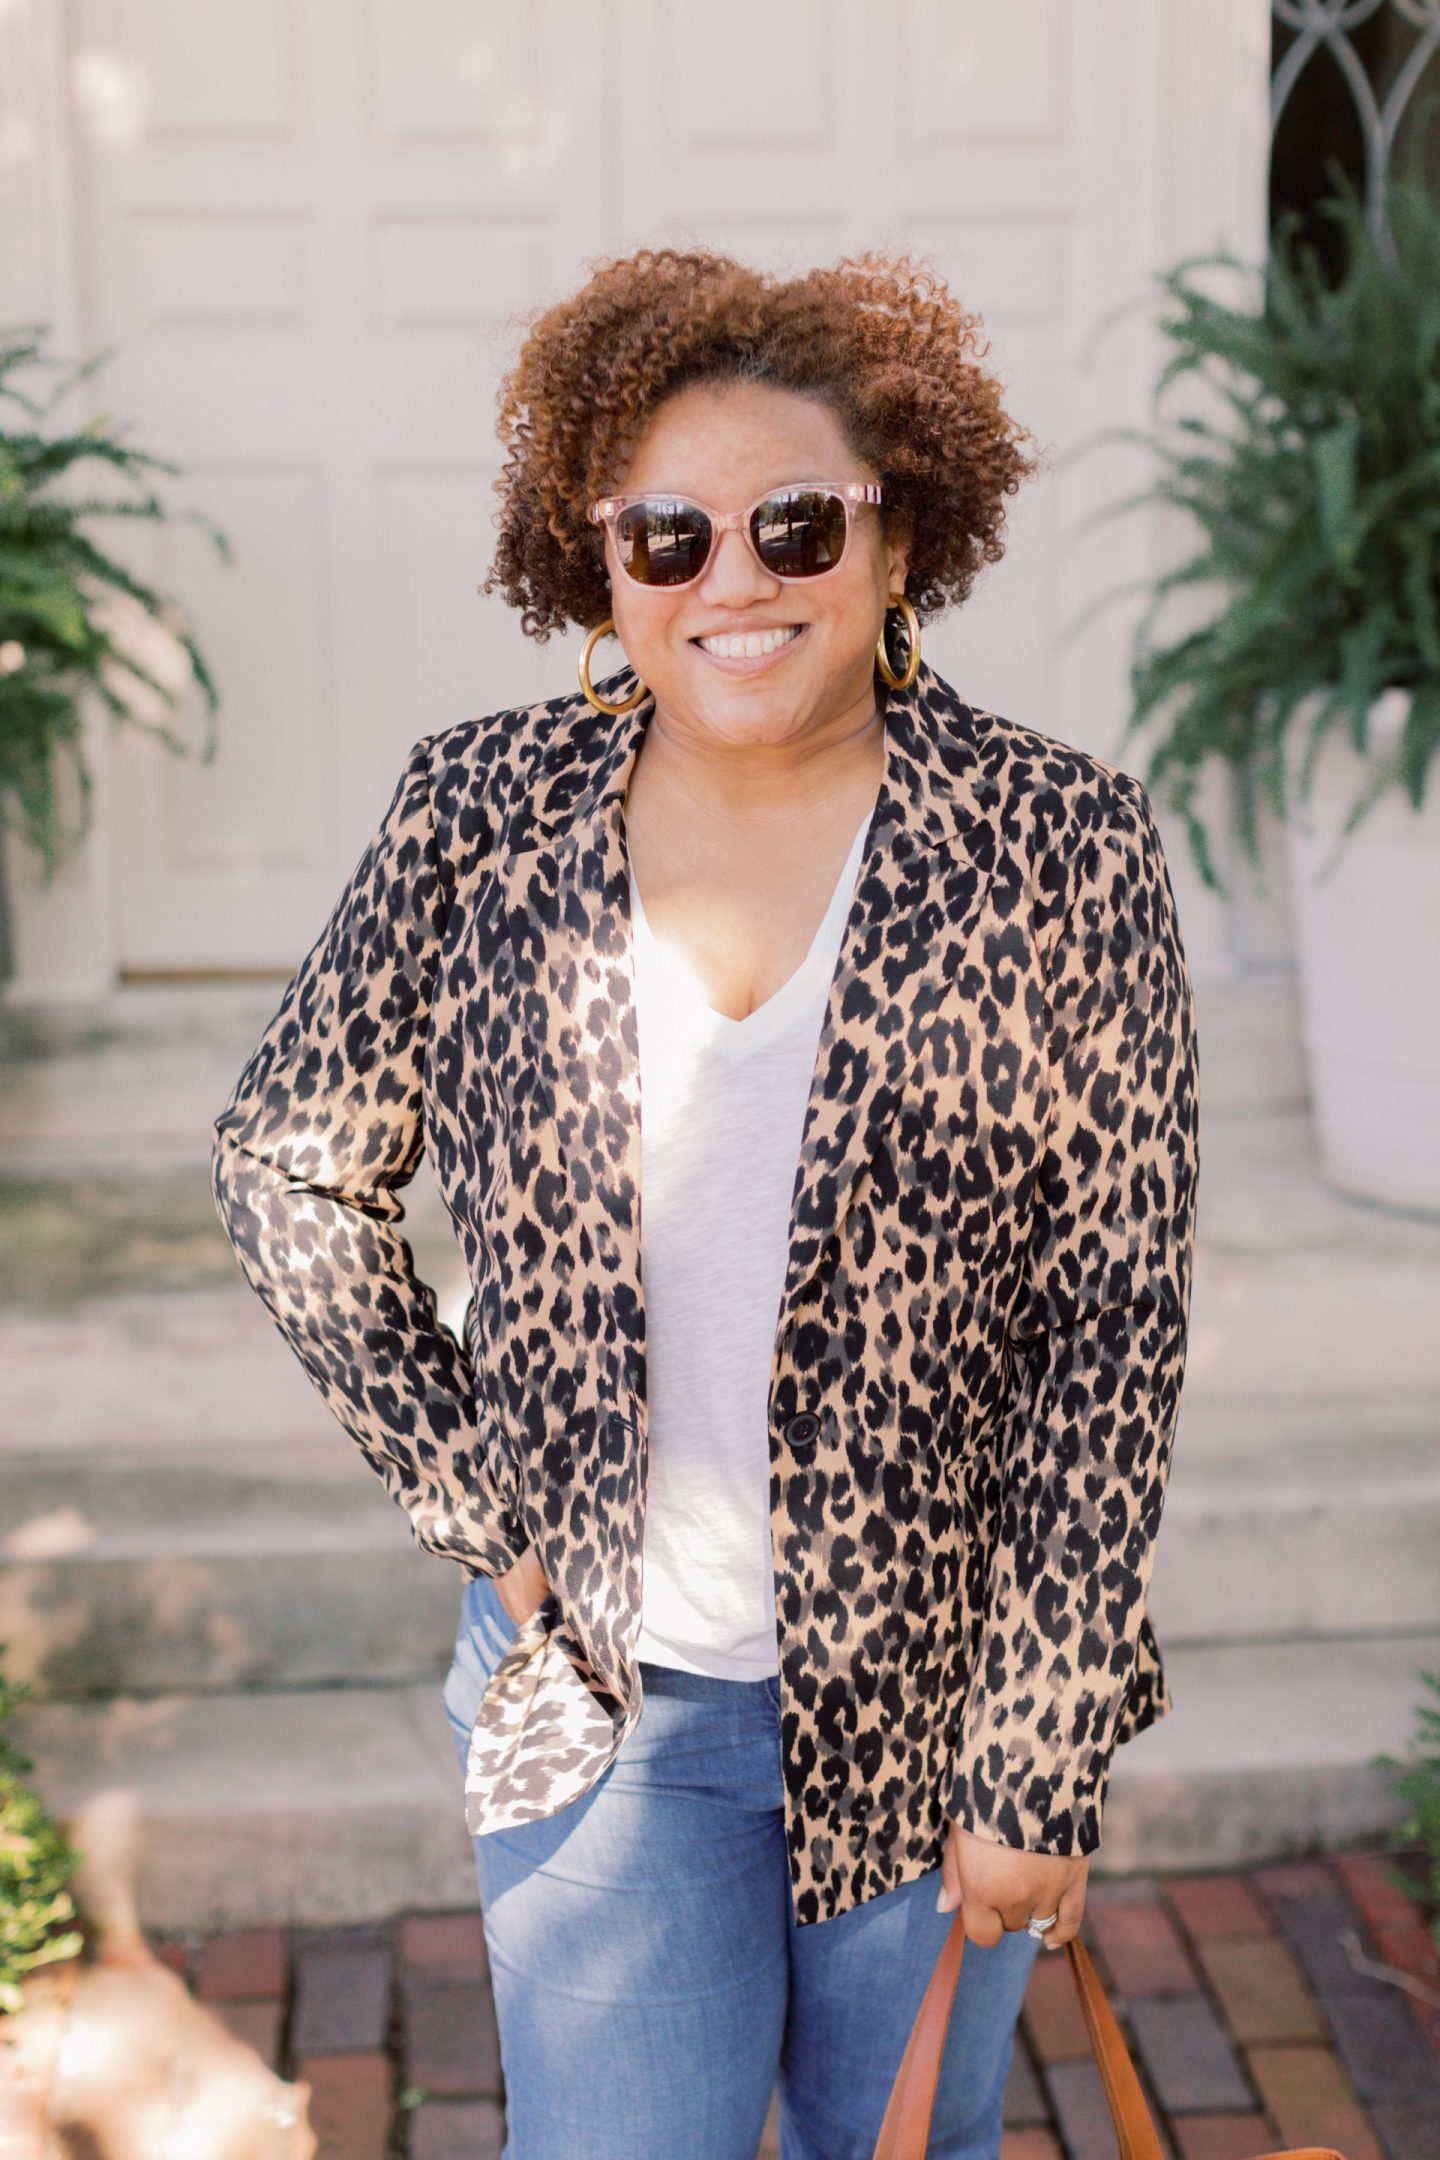 Leopard Print Clothing by popular Kentucky fashion blog, Really Rynetta: image of a woman wearing a Nordstrom One-Button Blazer HALOGEN®, Nordstrom Whisper Cotton V-Neck Pocket Tee MADEWELL, Nordstrom Cali High Waist Demi Boot Jeans MADEWELL, Nordstrom The Transport Stripe Embroidered Zip Top Crossbody Tote MADEWELL, Nordstrom Medium Hoop Earrings MADEWELL, Nordstrom Yulunda Pump MARC FISHER LTD, and Nordstrom rowan loafer KATE SPADE NEW YORK.